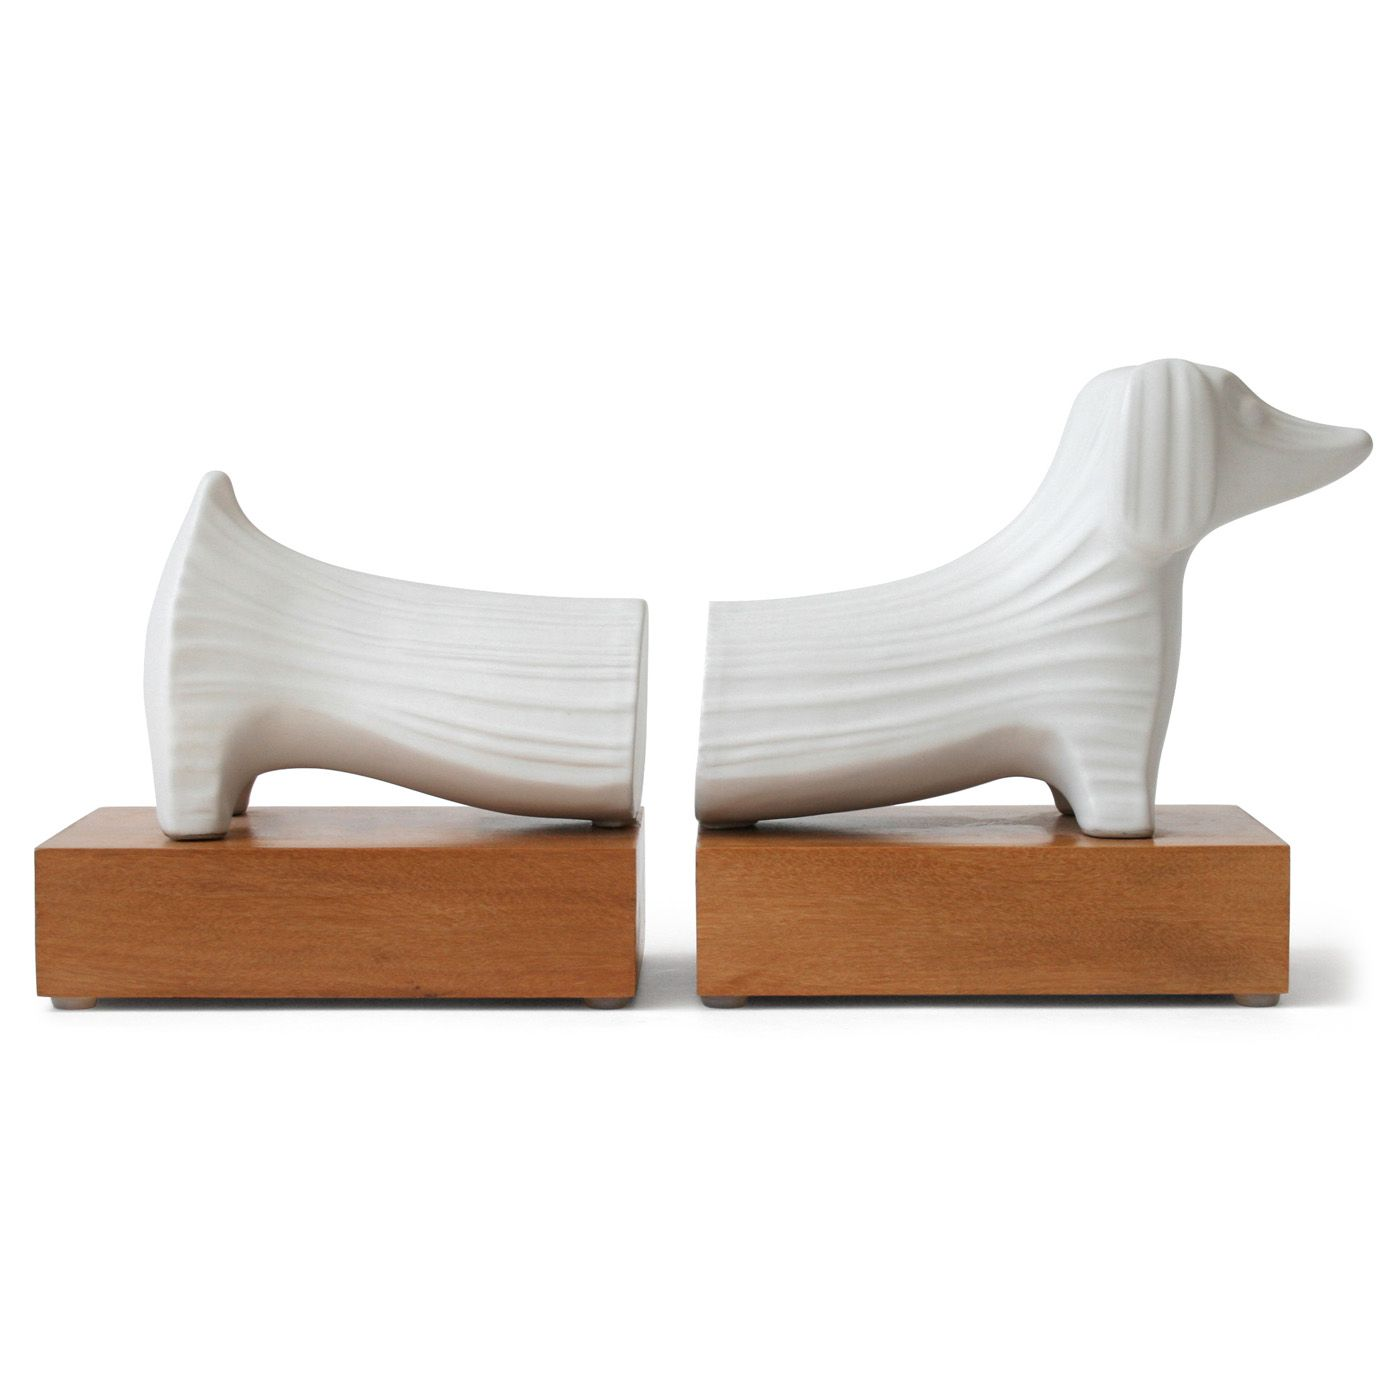 Dachshund Home Decor Dachshund Bookends I Need I Saw Them On The Mindy Project